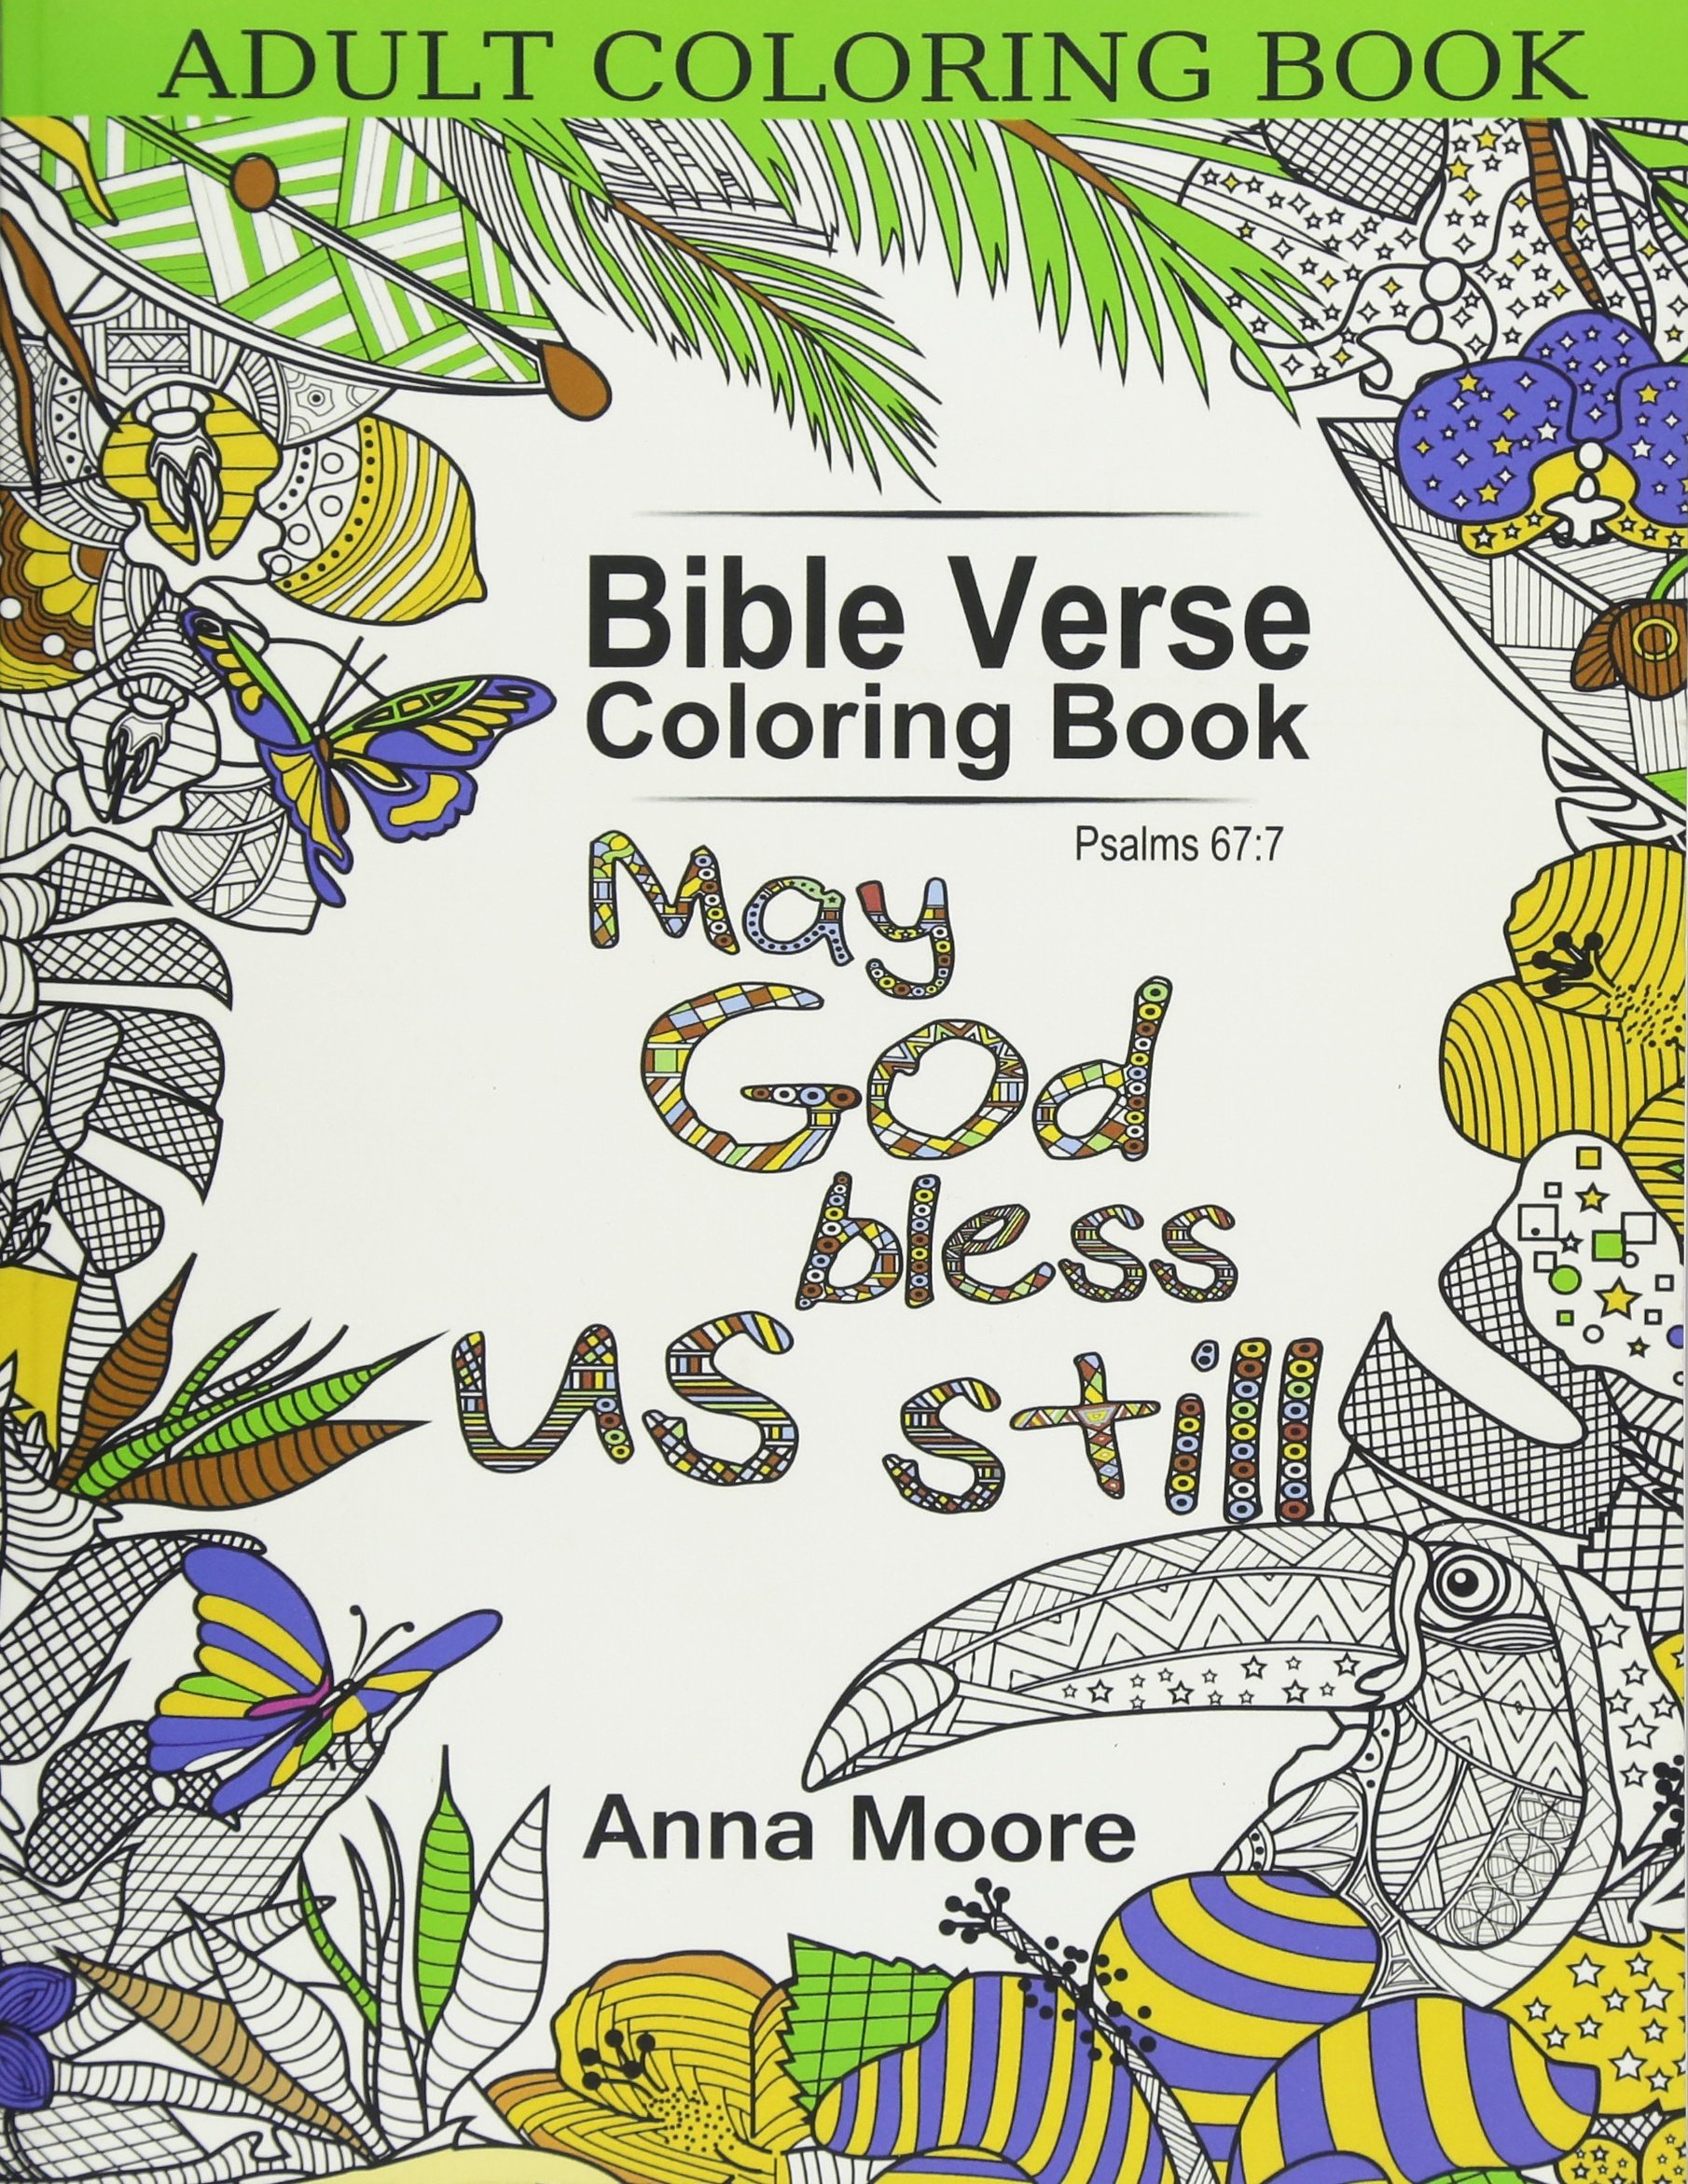 - Amazon.com: Adult Coloring Book: Bible Verse Coloring Book